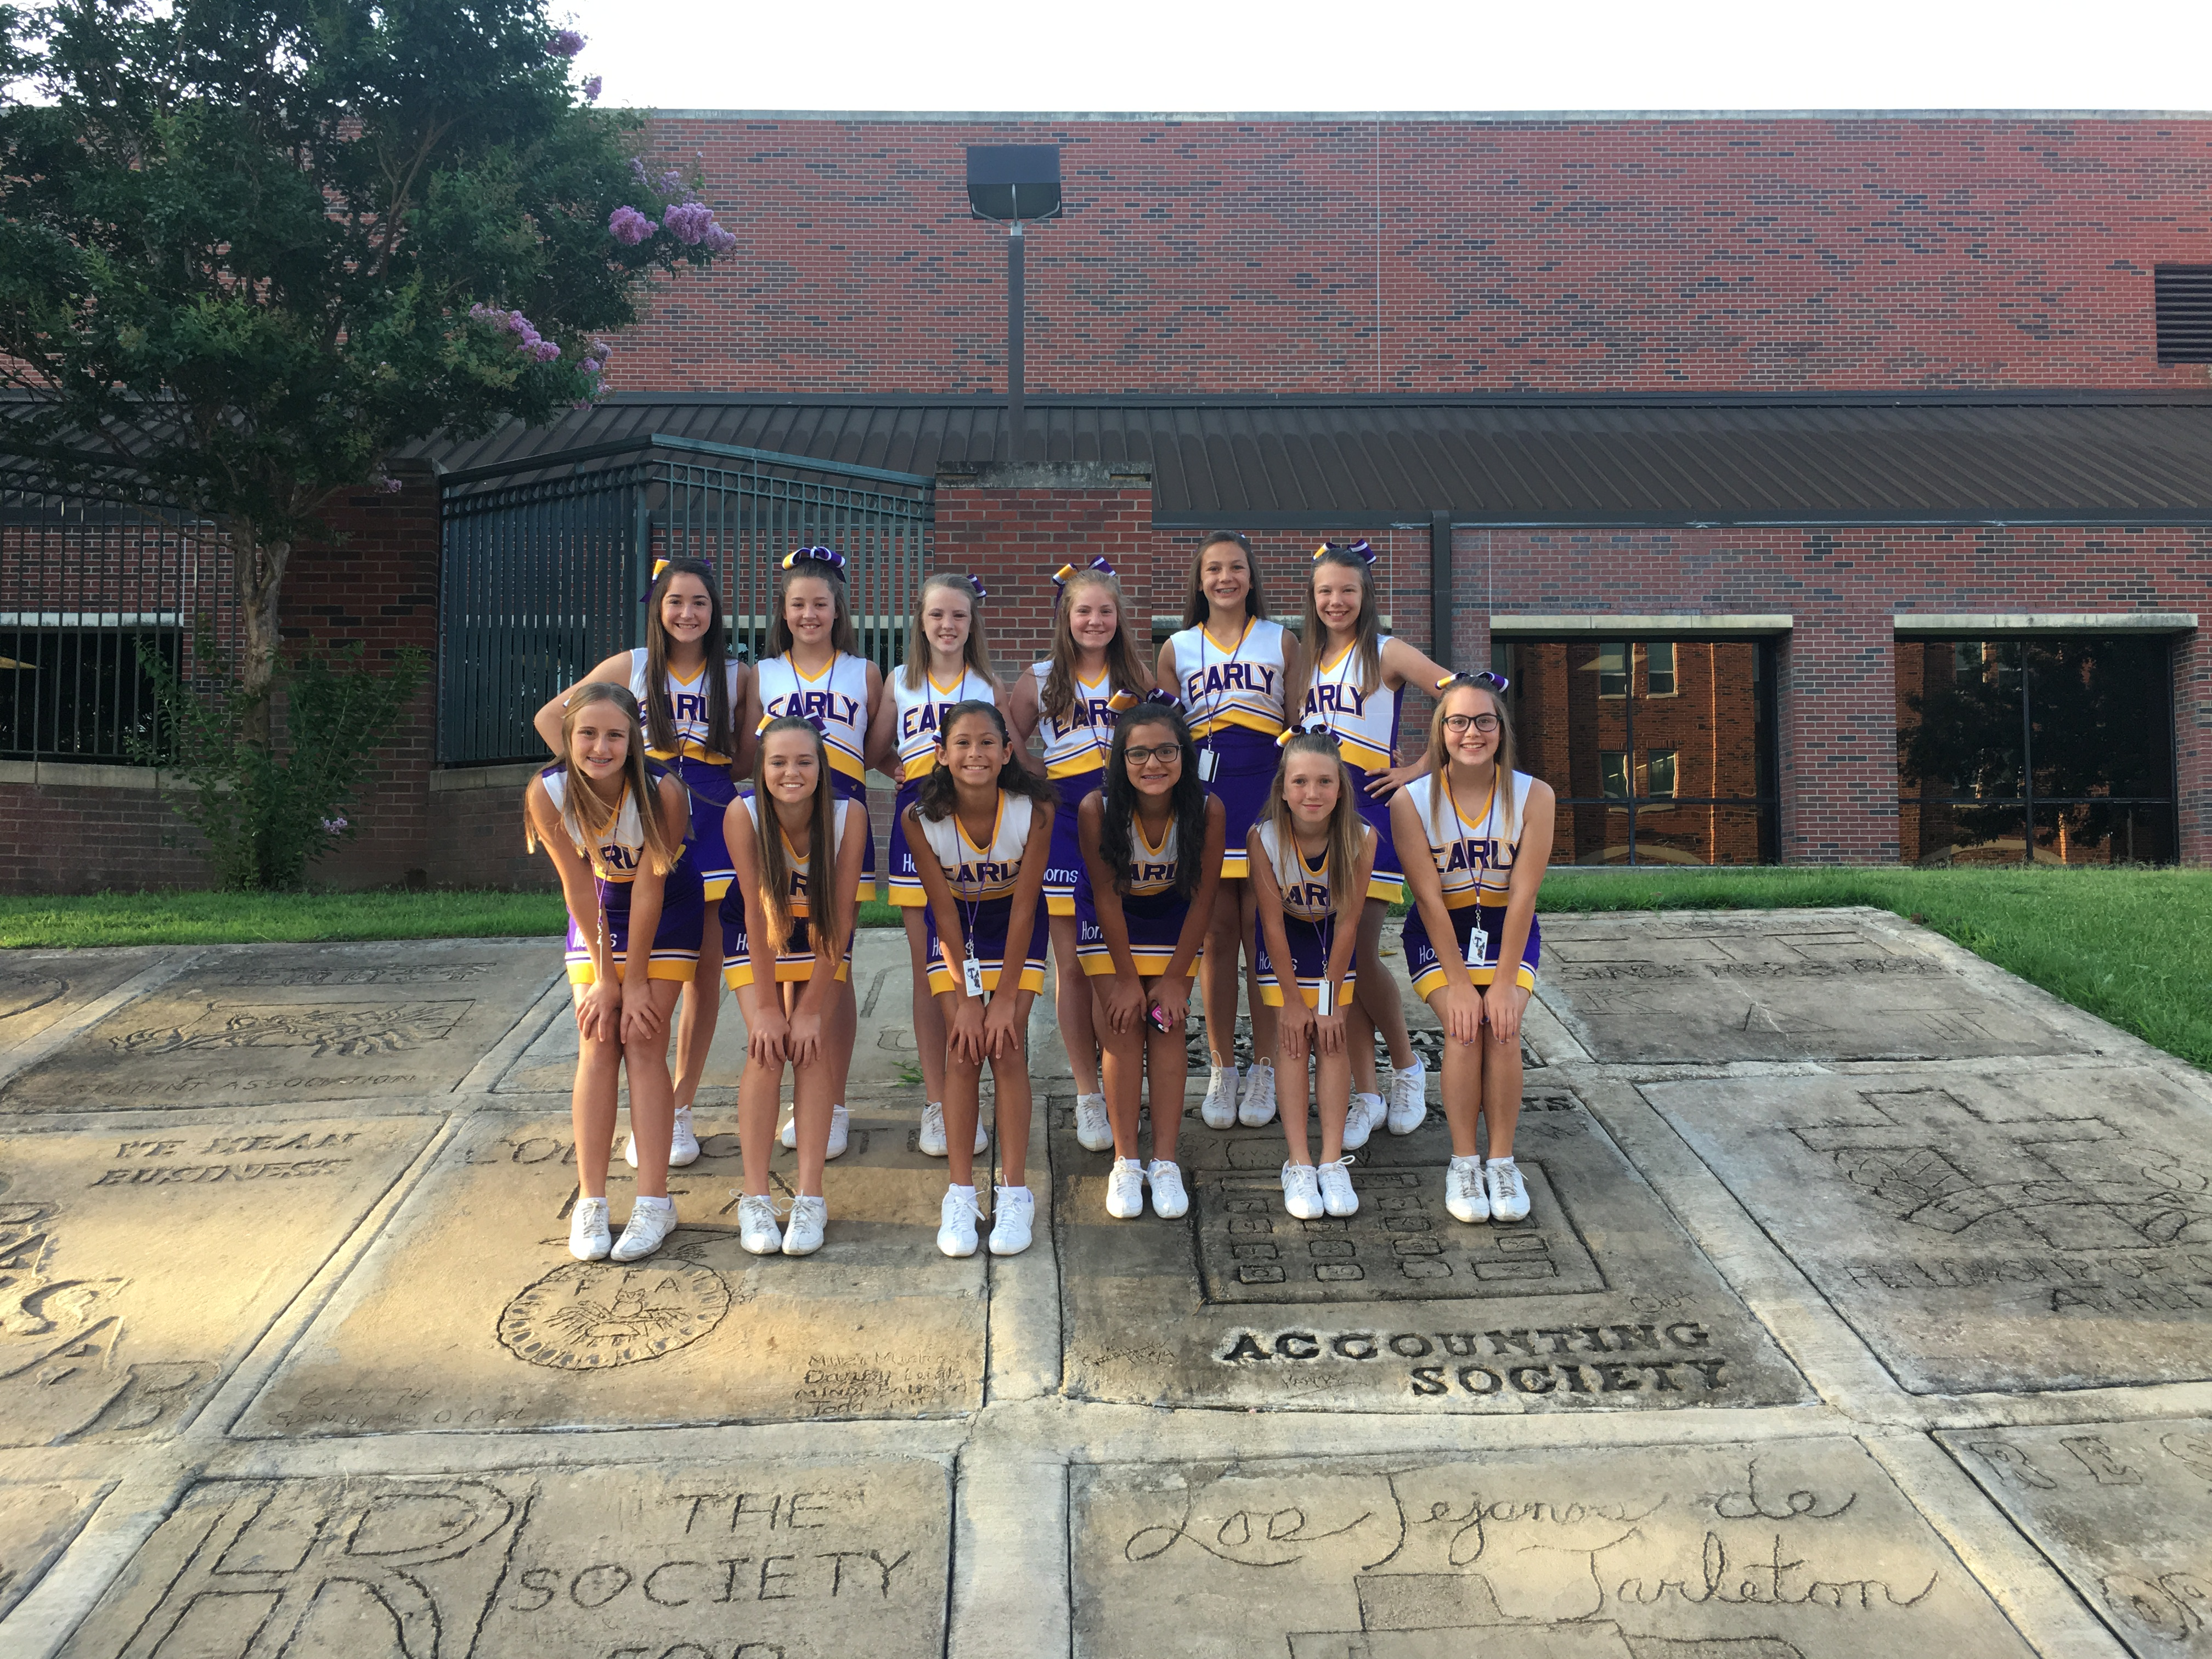 Final day at Cheer Camp 2017